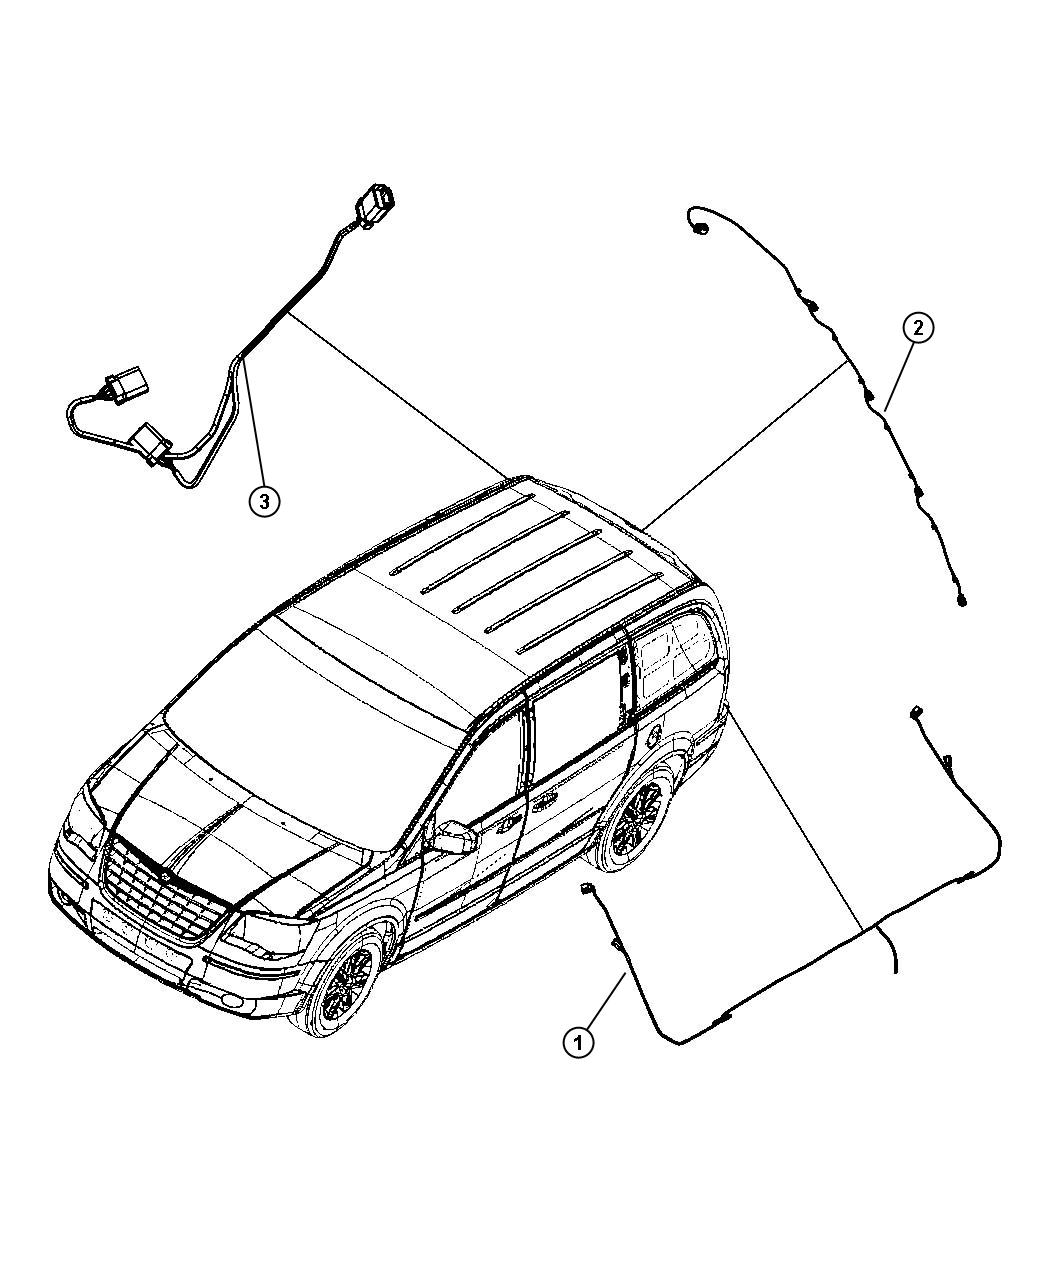 Dodge Grand Caravan Fwd 3 8l V6 Ohv 6 Speed Automatic 62te Wiring Chassis And Underbody